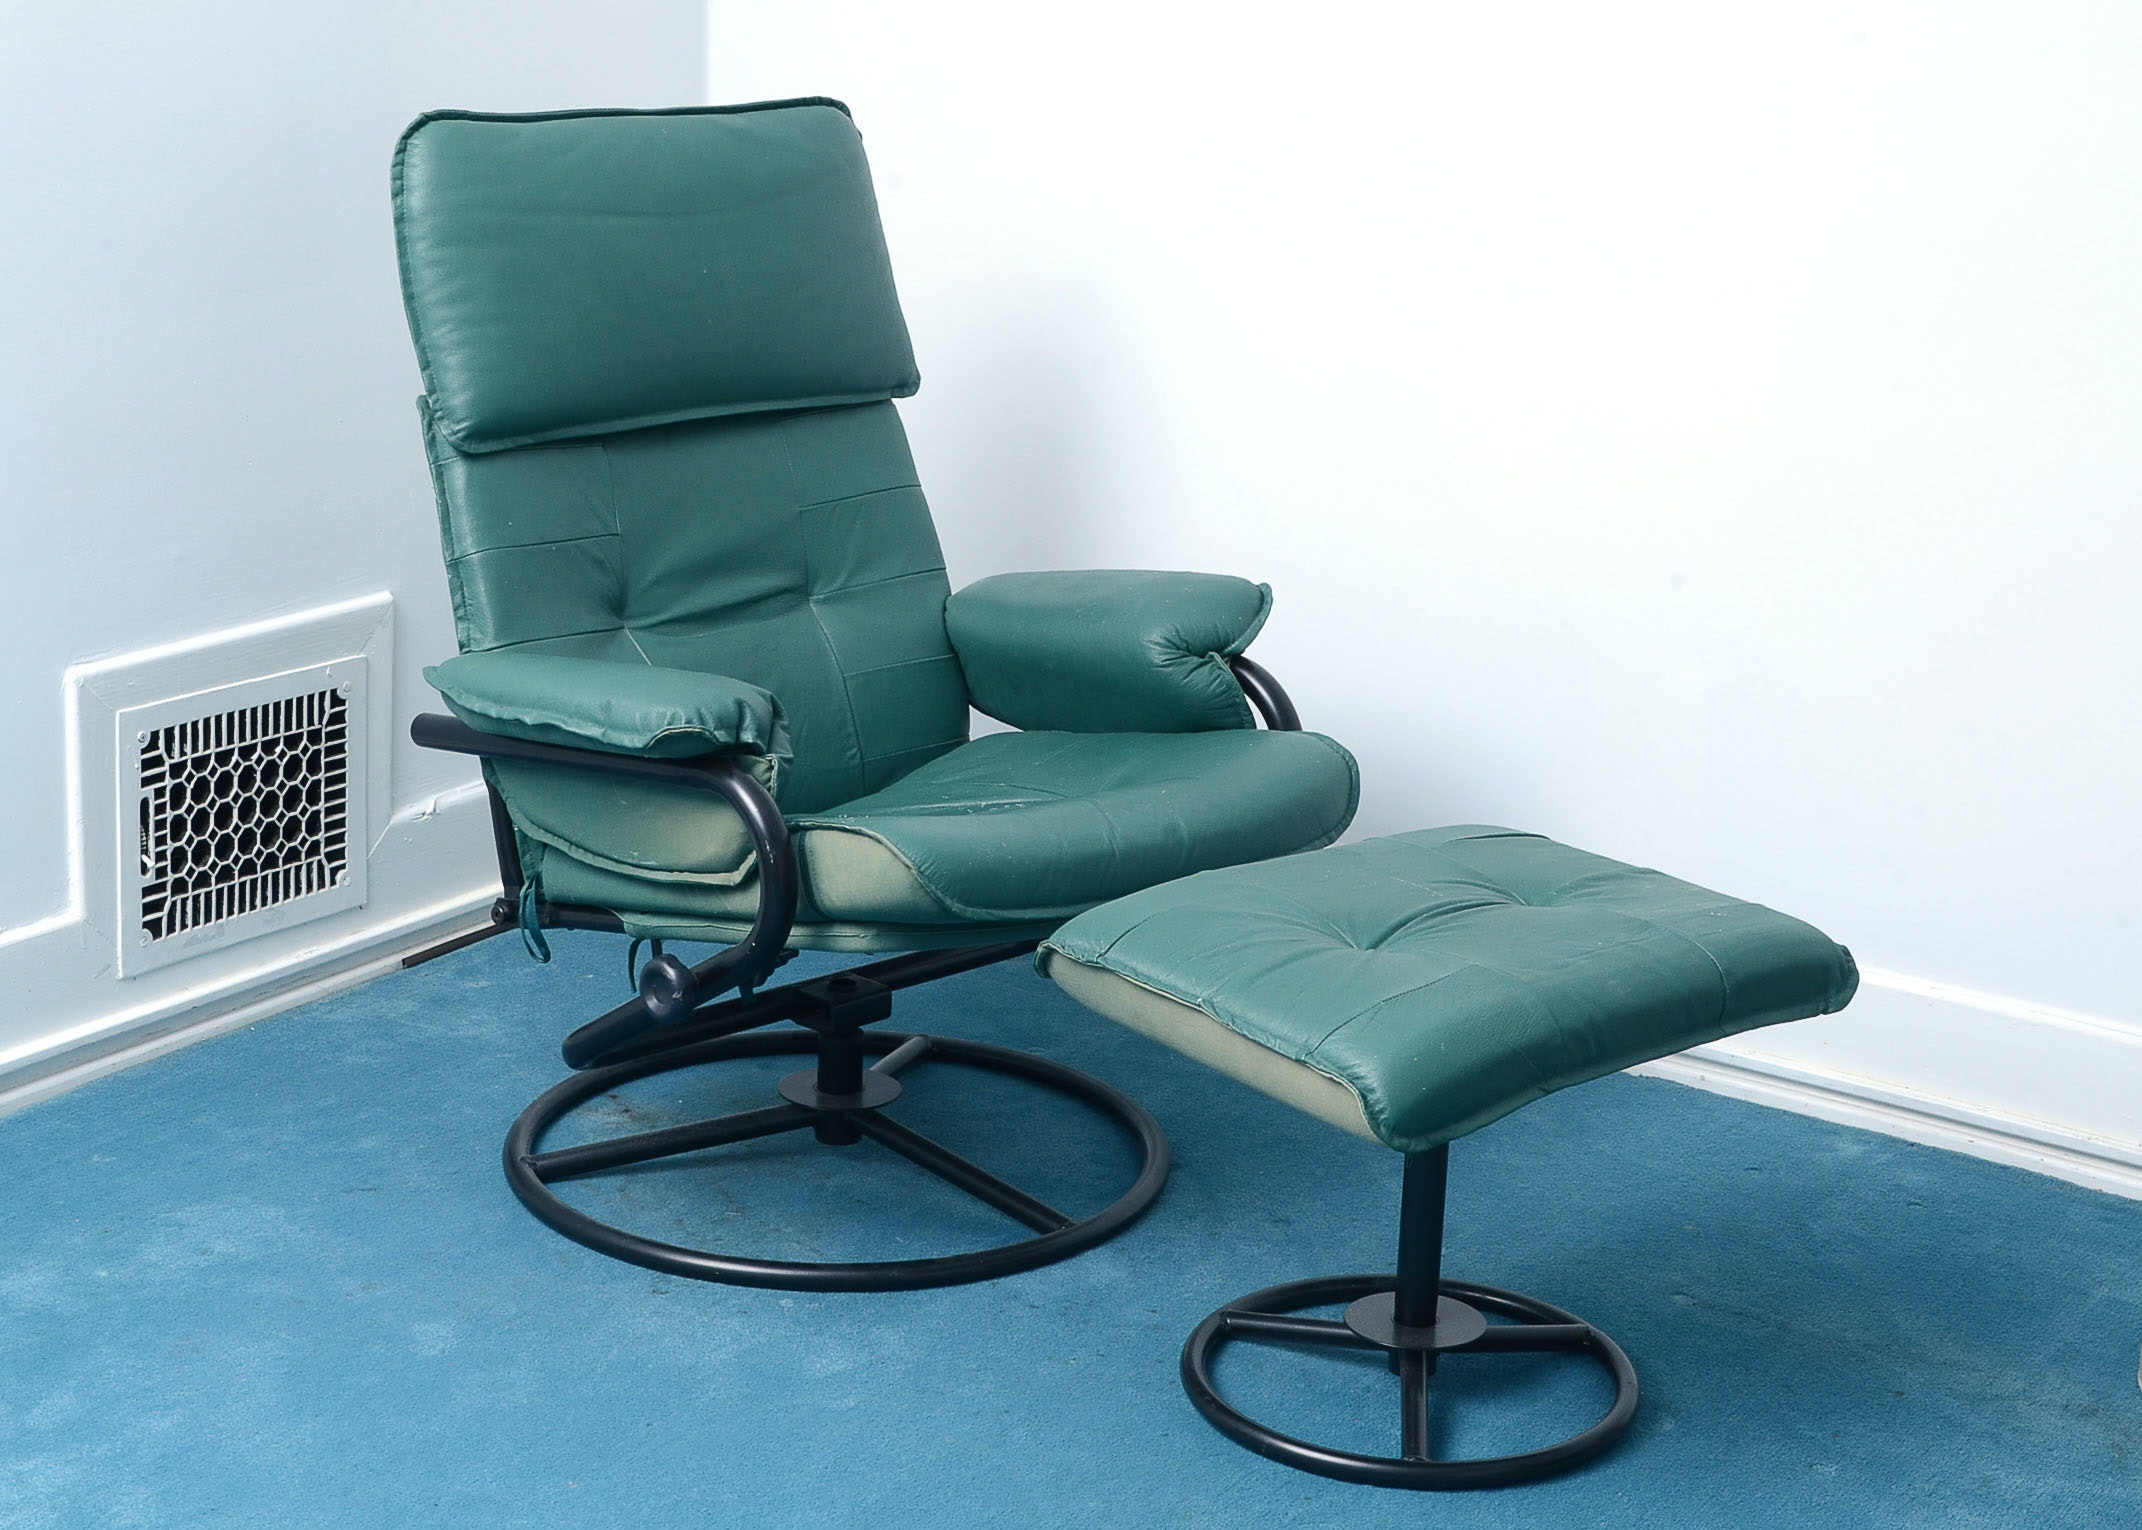 Modern Style Green Vinyl Chair and Ottoman